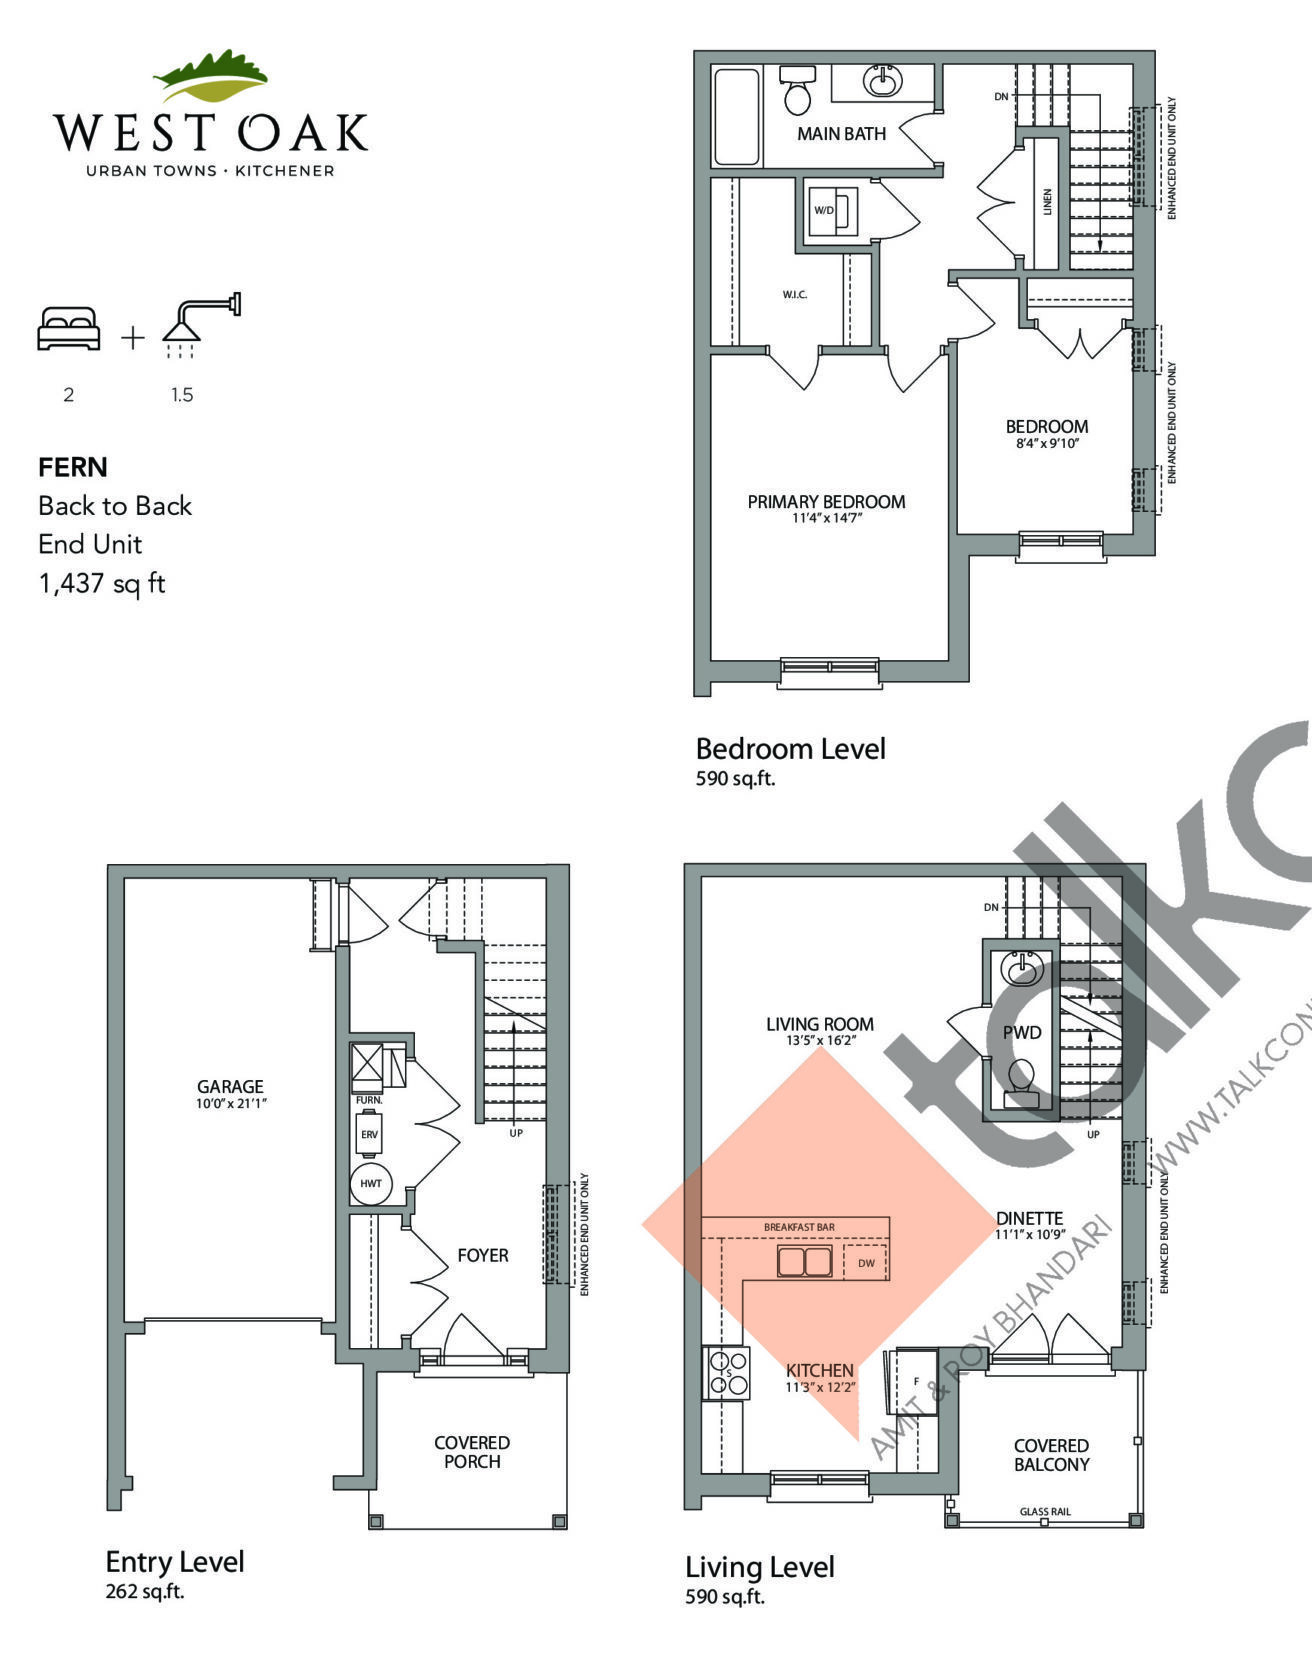 Fern Floor Plan at West Oak Urban Towns - 1437 sq.ft